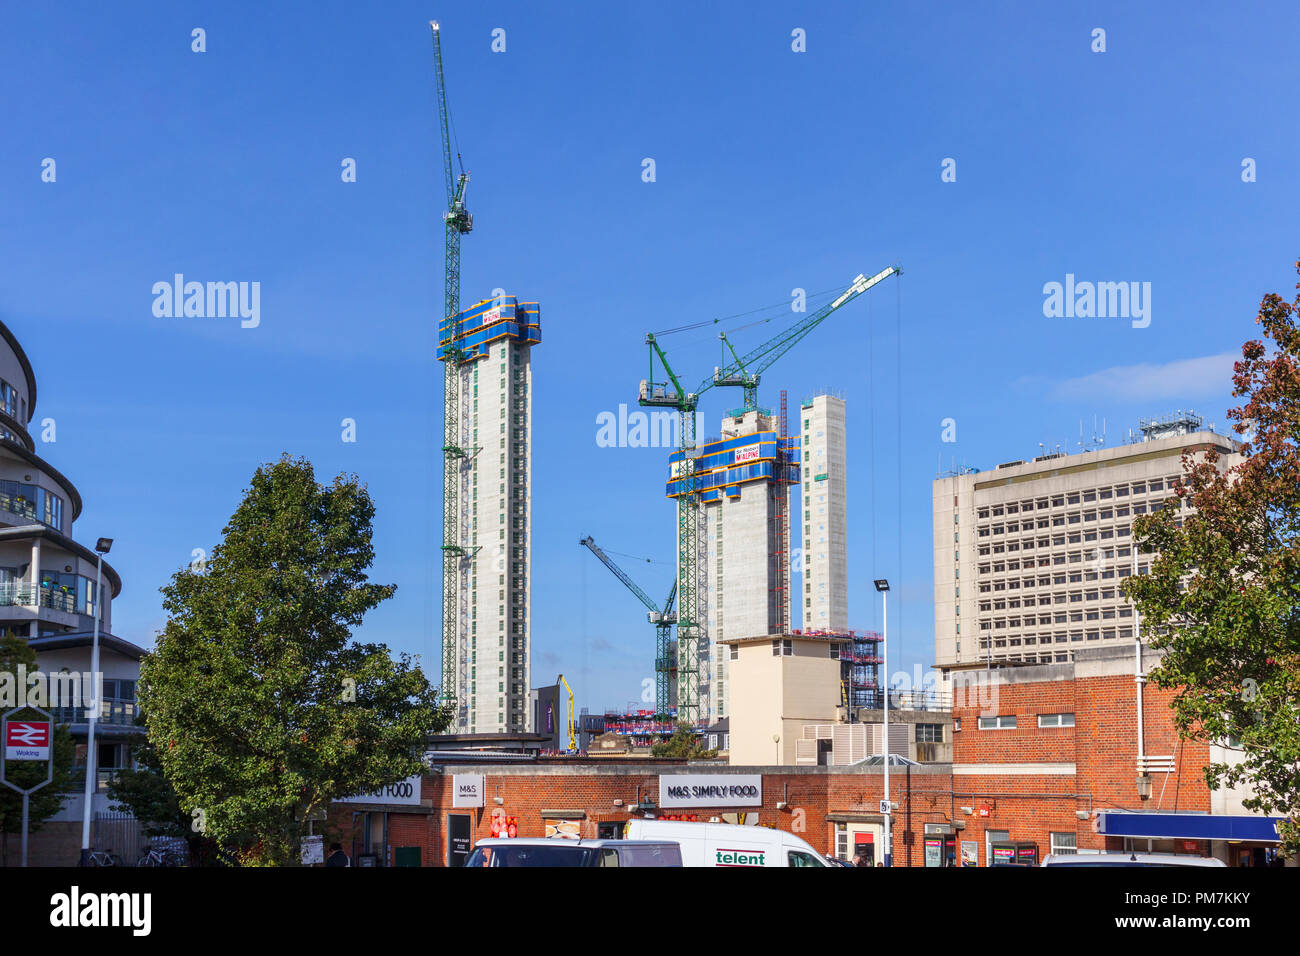 Cores and tower cranes of new mixed use Victoria Square development project under construction in Woking town centre viewed from the station on a sunny day - Stock Image